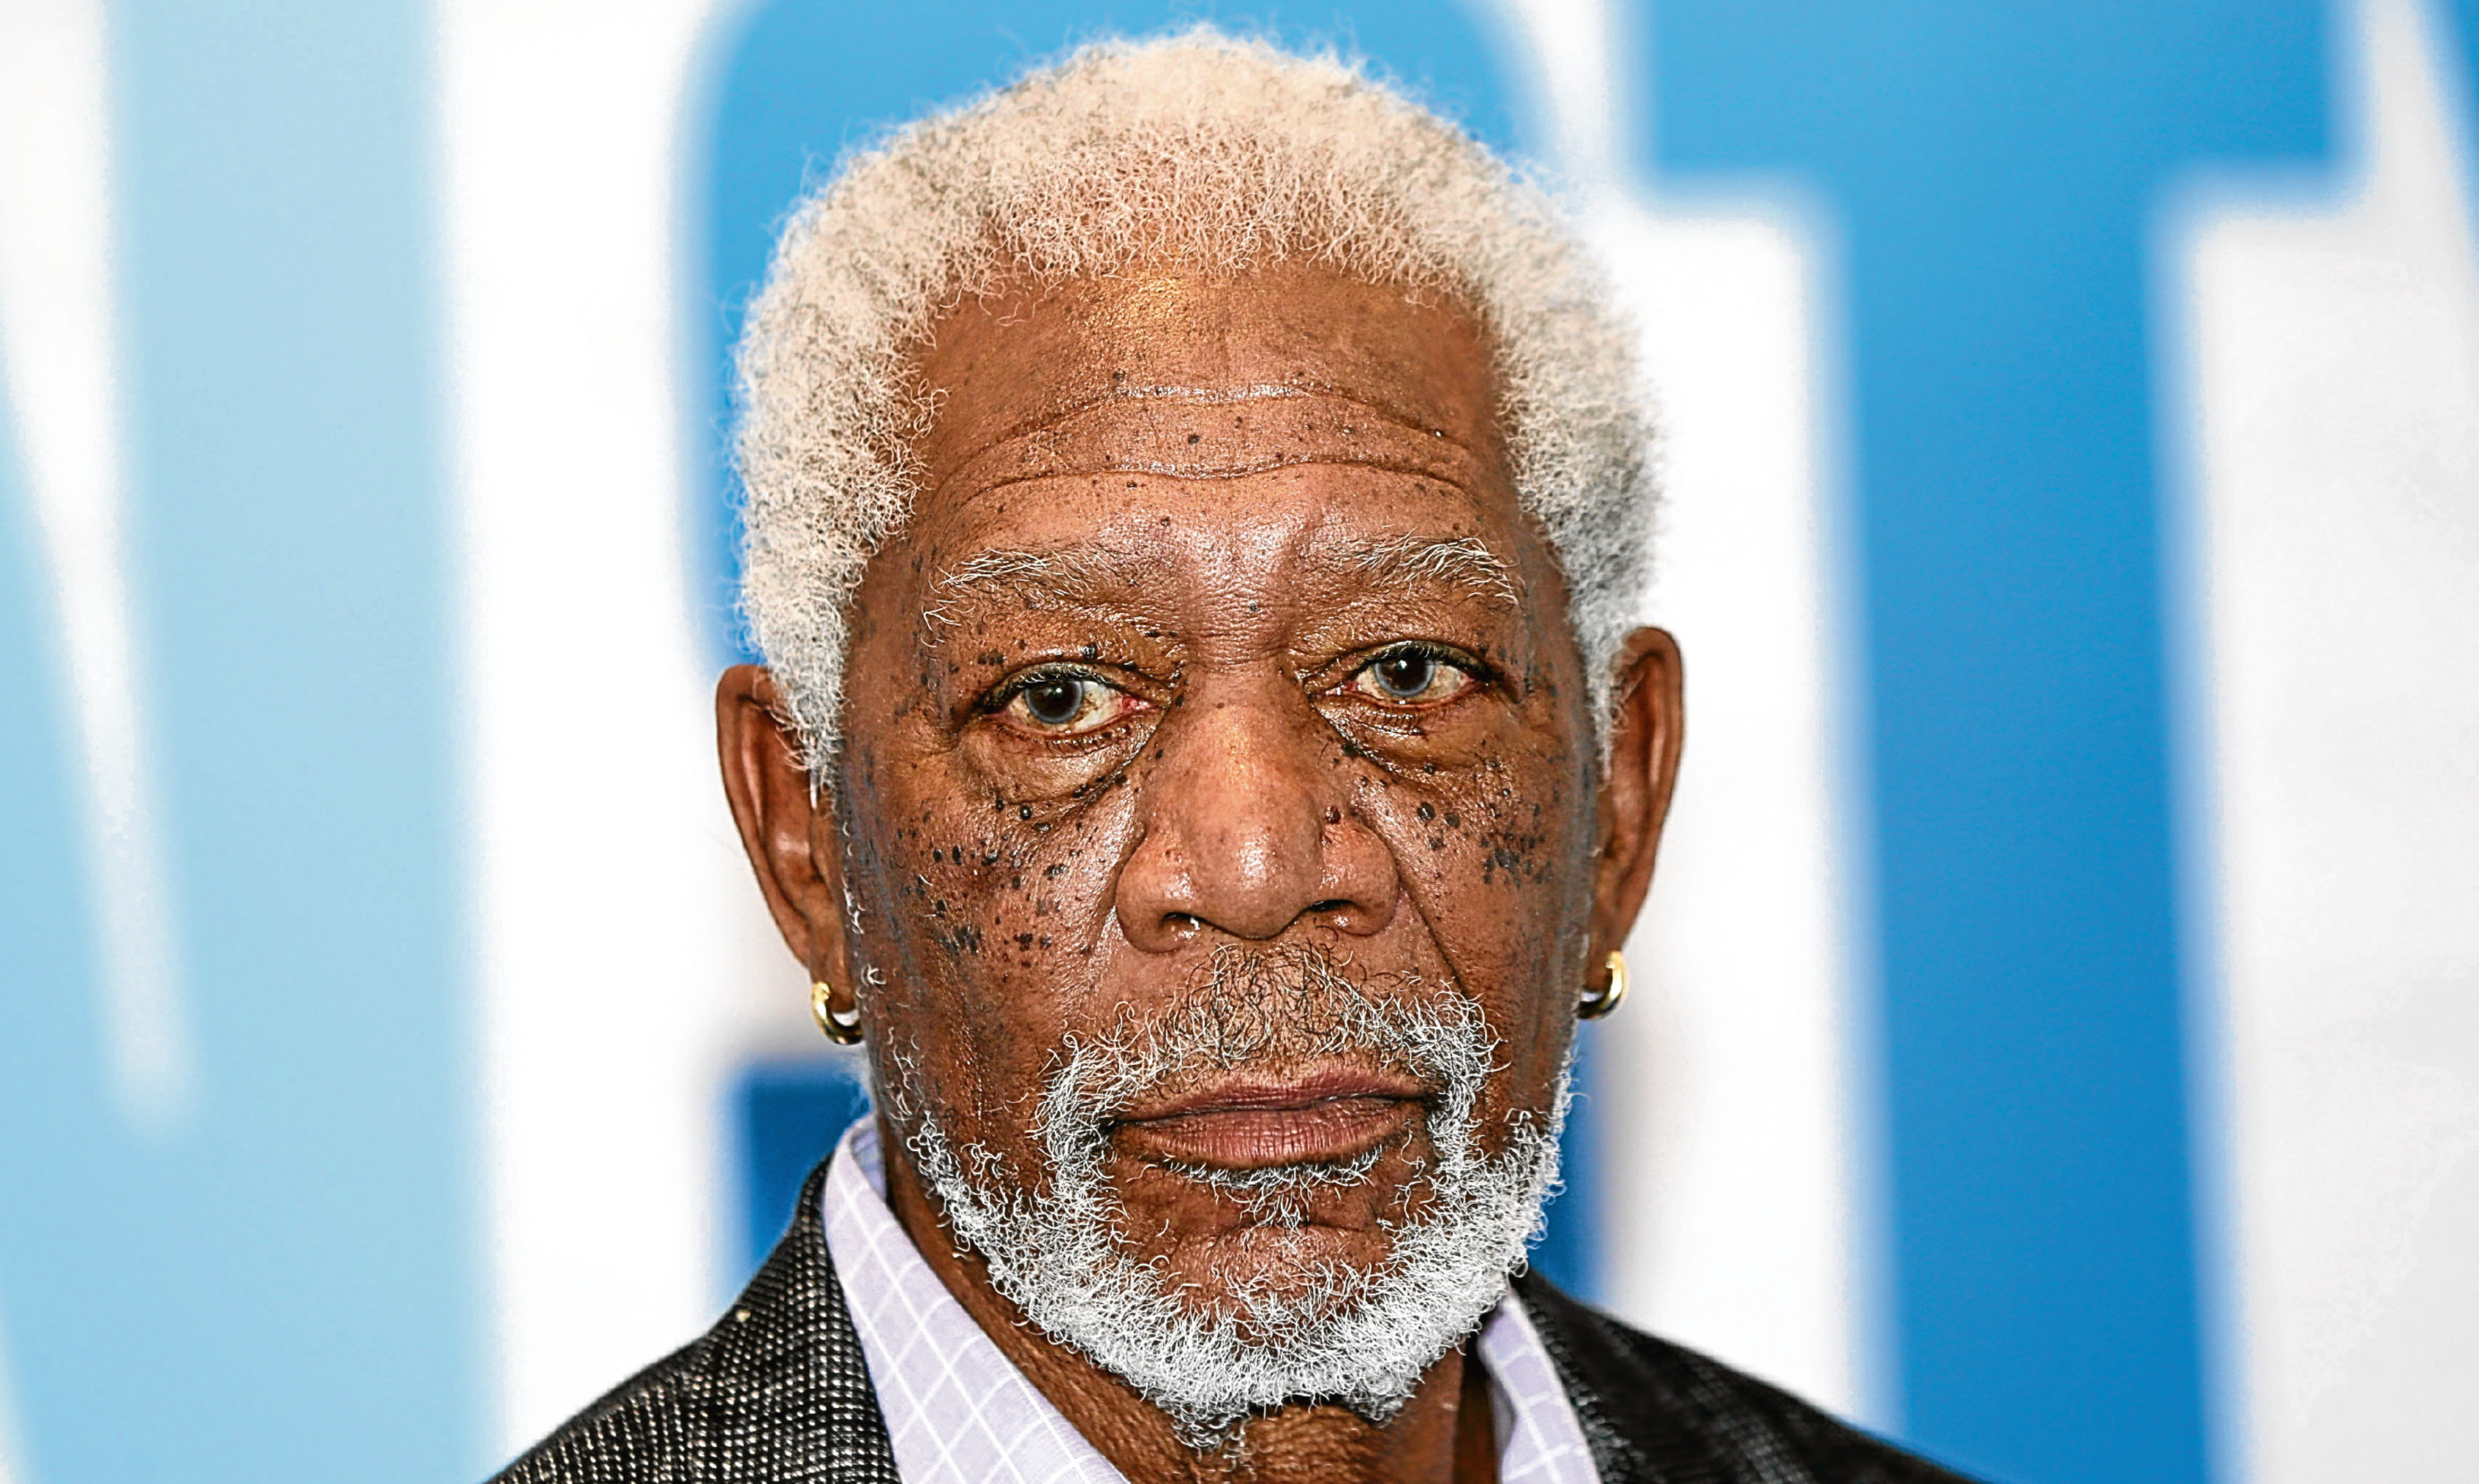 Morgan Freeman - who won't do your voicemails any more.